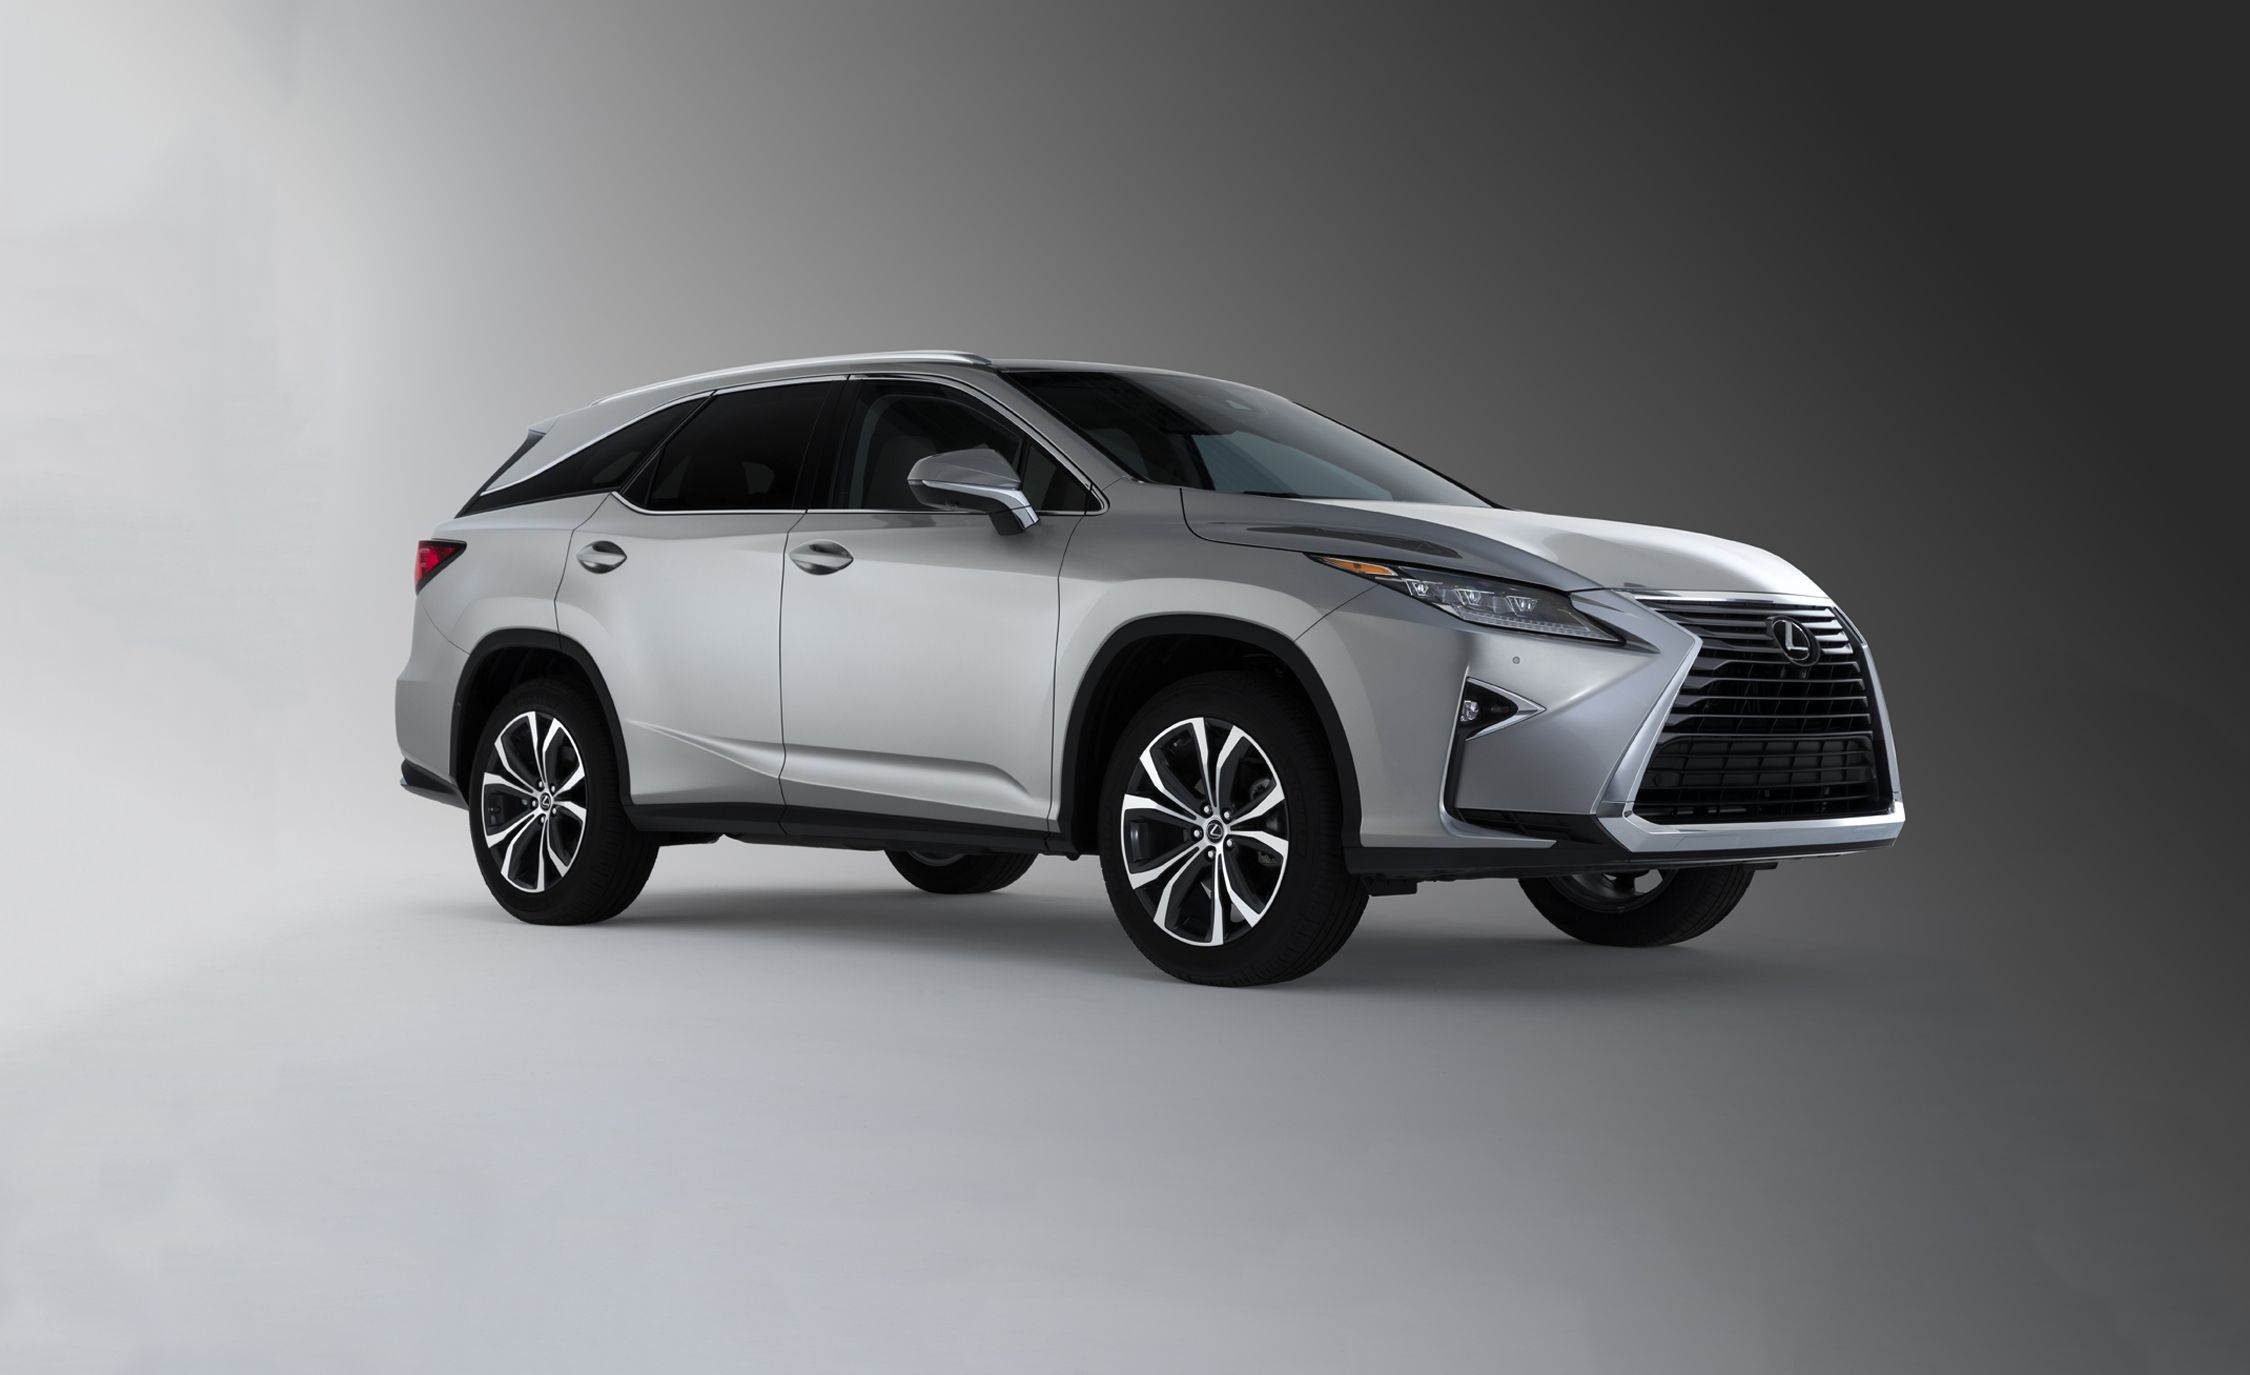 2018 Lexus RX350L / RX450hL: The RX Gets An Extra Length Rx